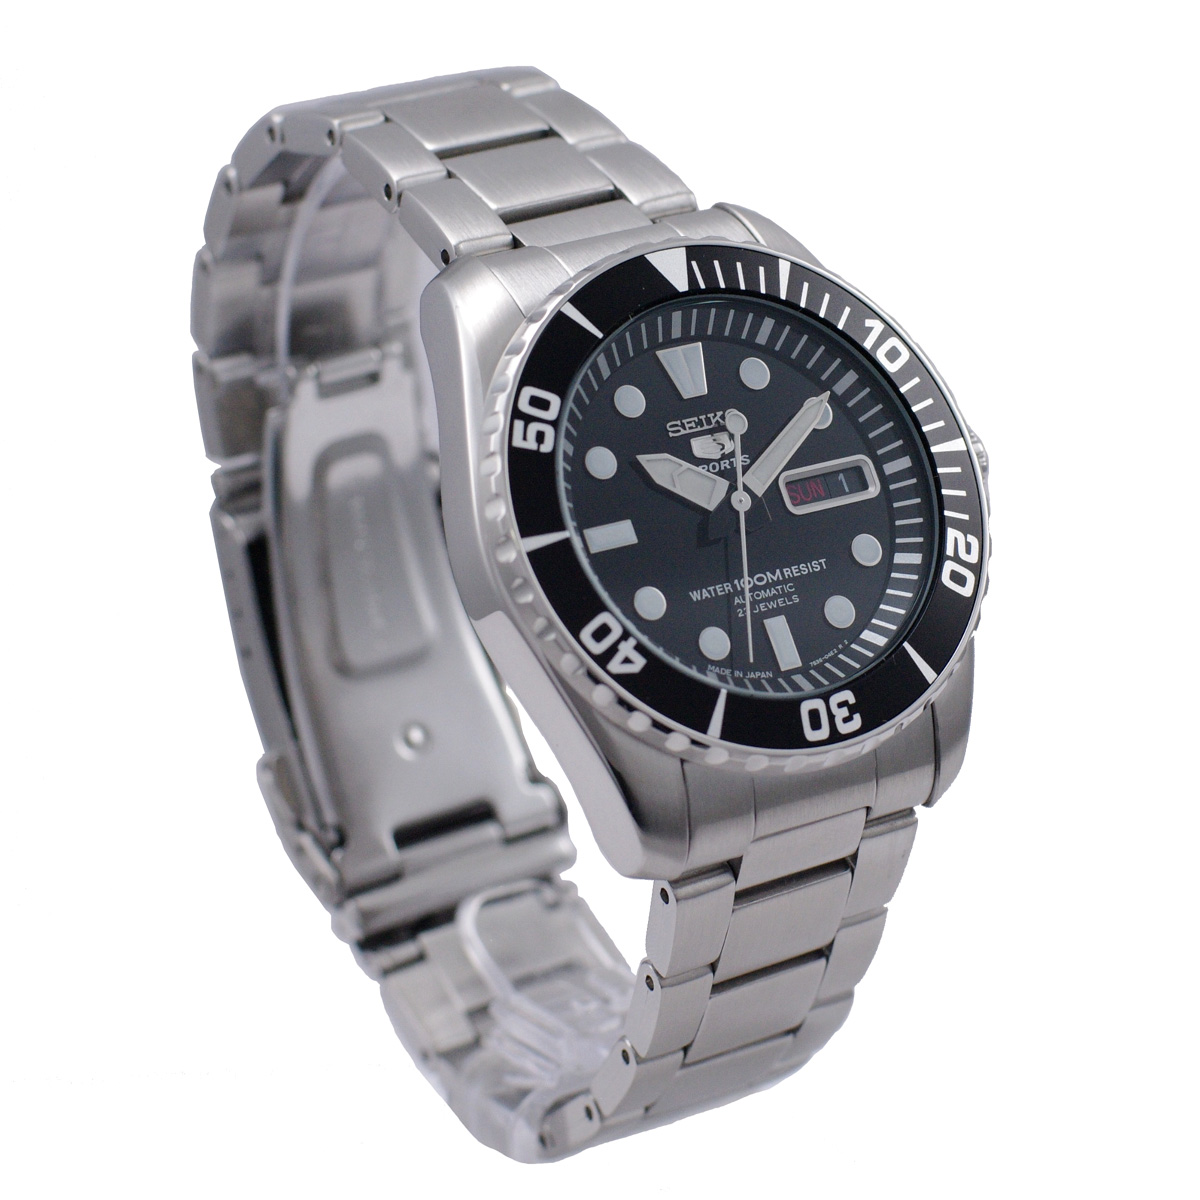 wholesale dealer 88272 b2b25 SNZF17J1 men made in SEIKO SEIKO 5 SPORTS watch foreign countries model  self-winding watch Japan [reimportation product]